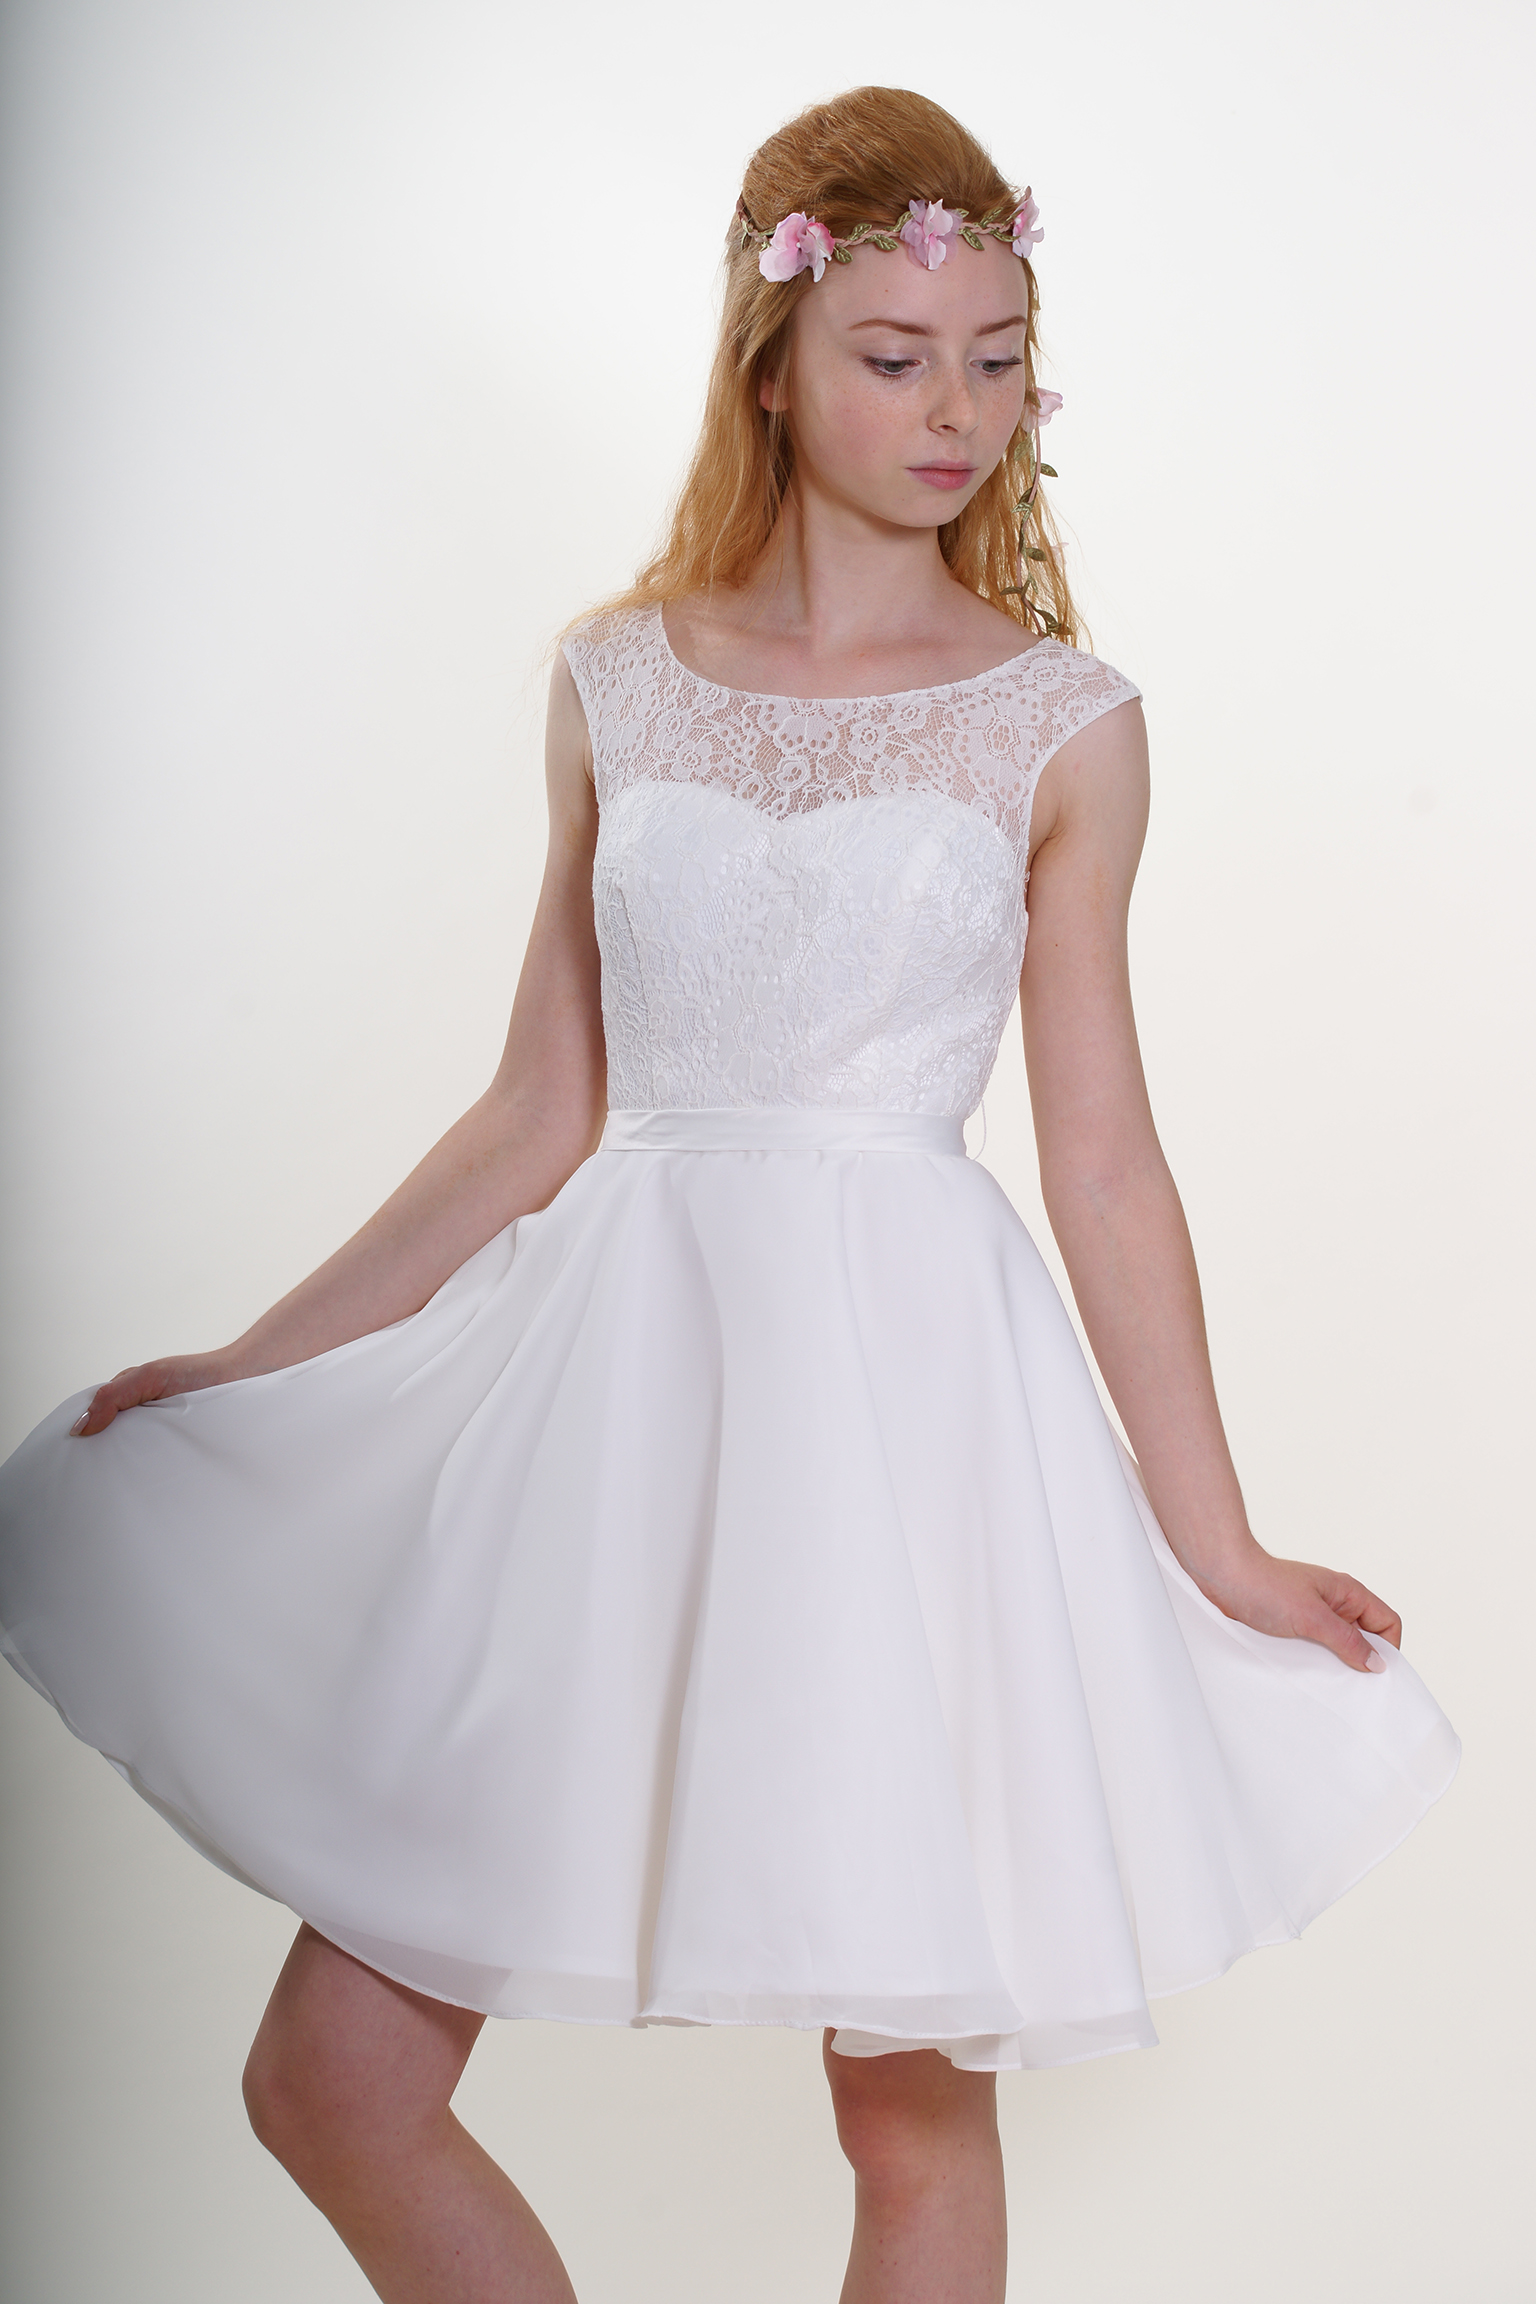 Dresses For 11 Year Olds